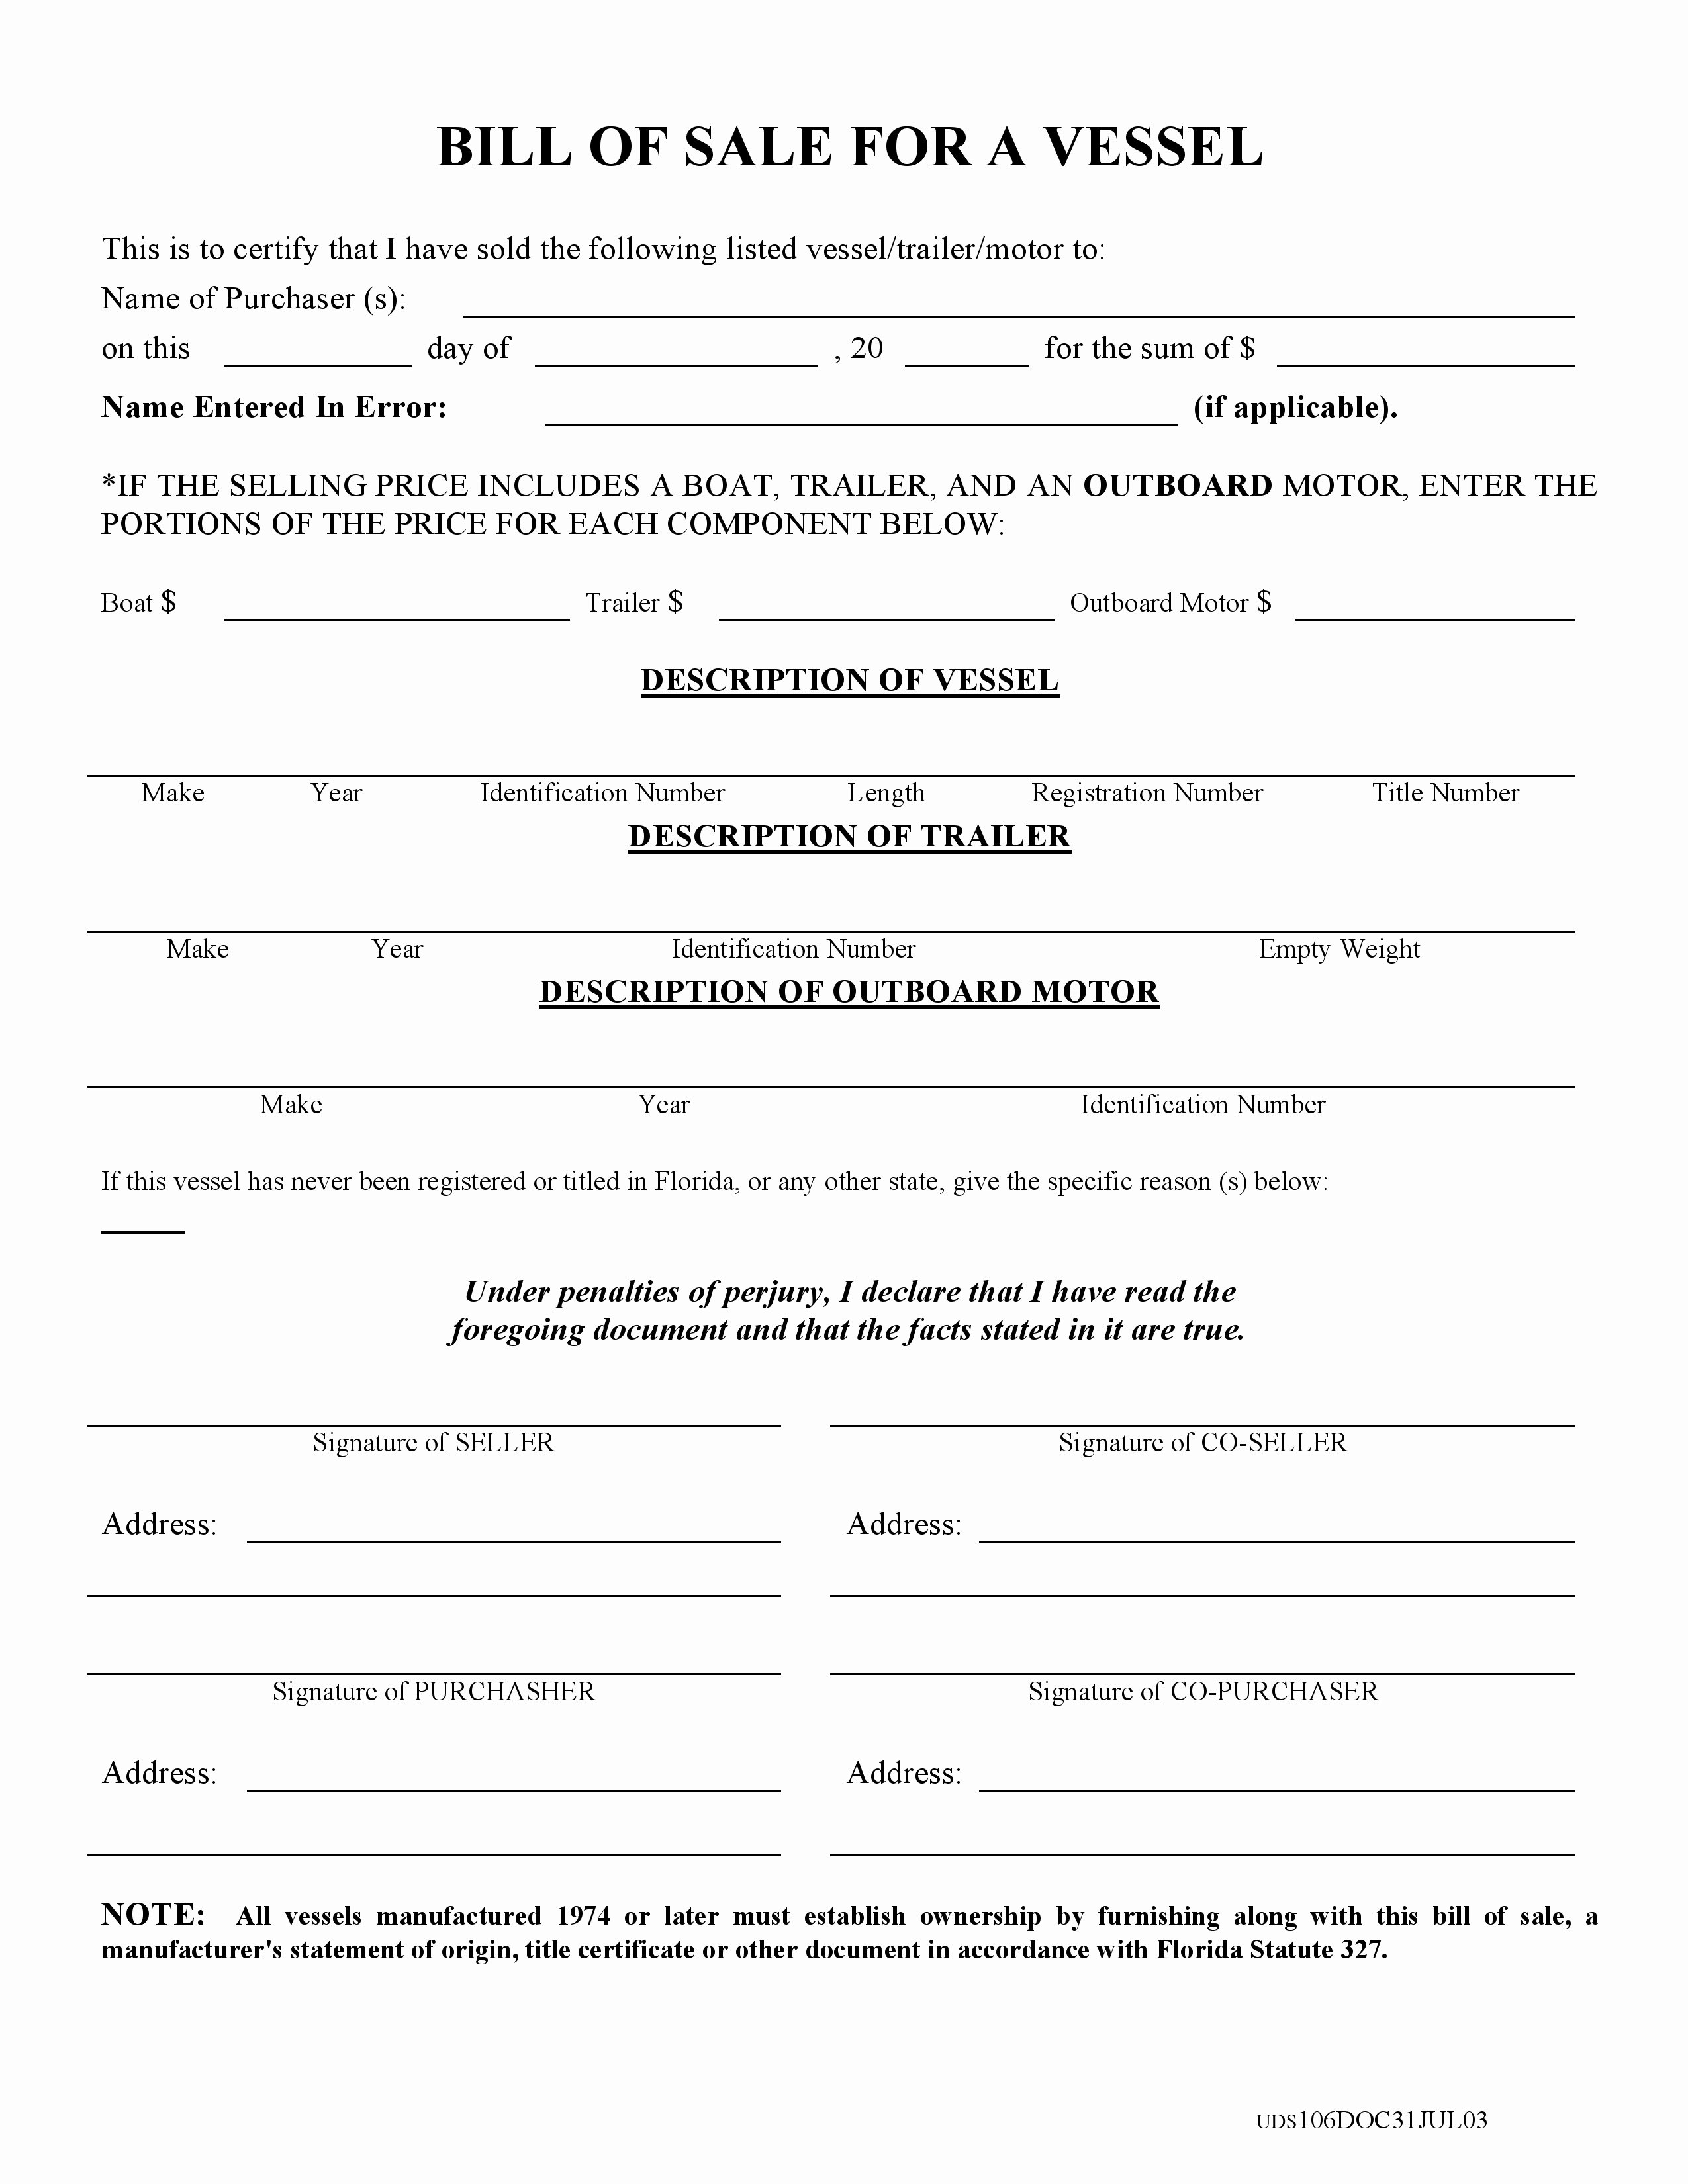 Florida Gun Bill Of Sale Fresh Free Florida Boat Bill Of Sale form Pdf